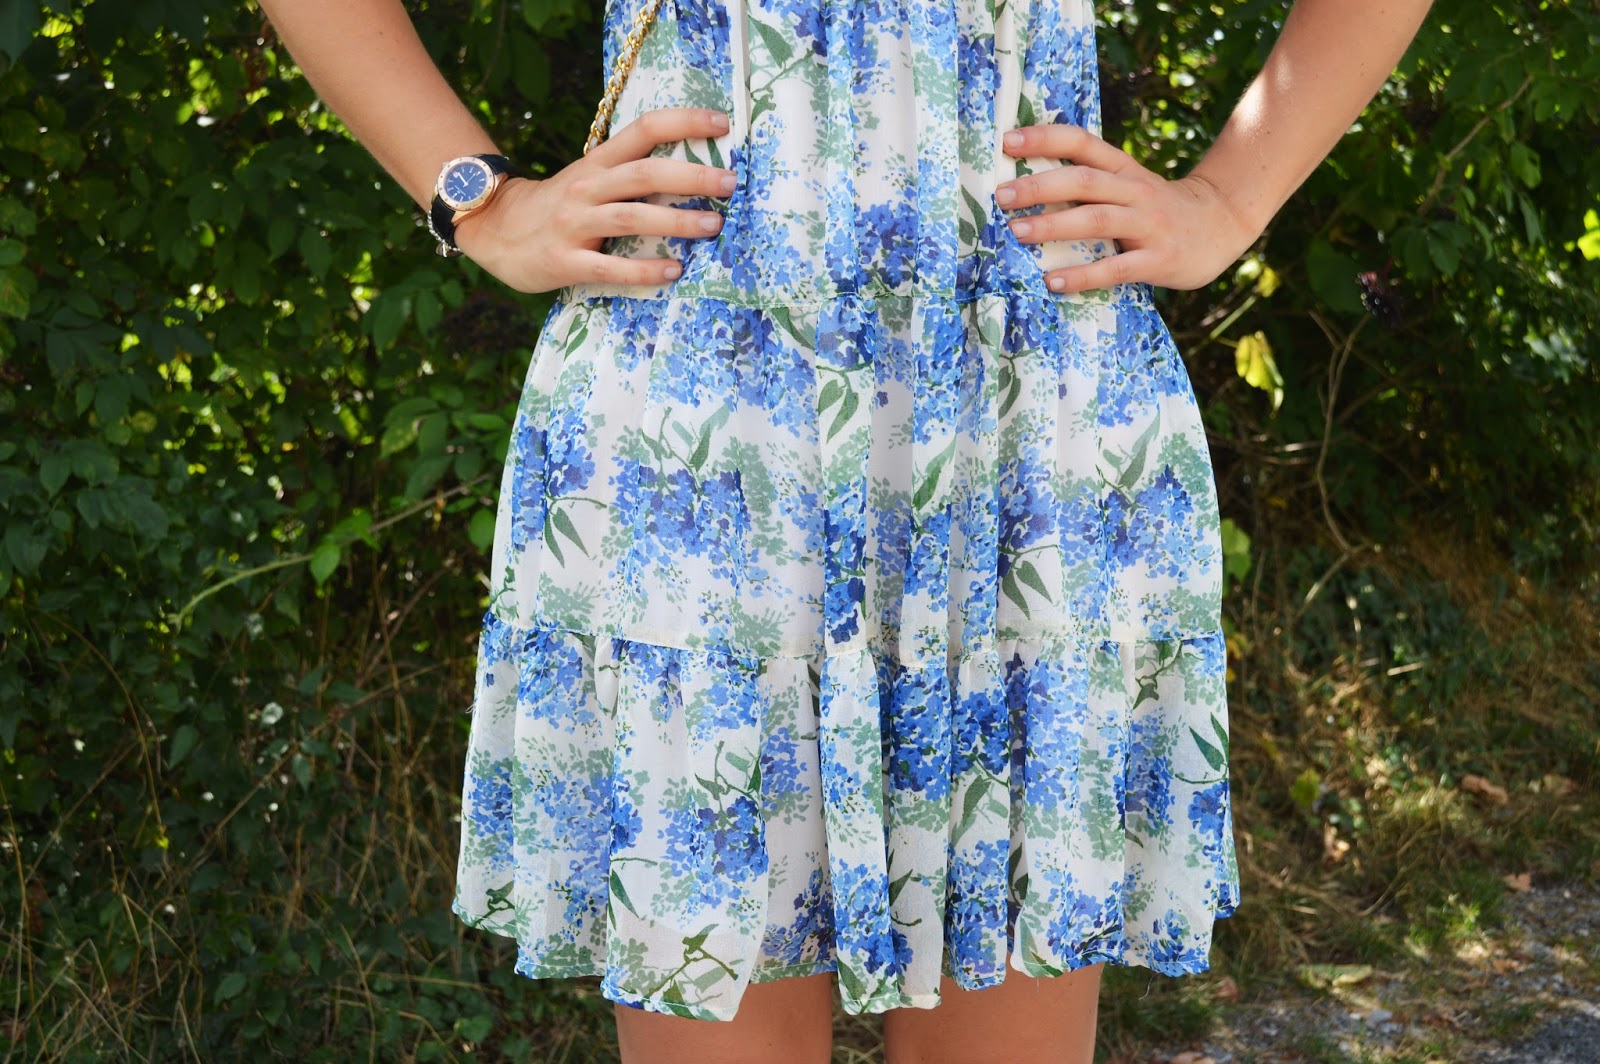 Outfit ideas: blue flower dress | The fashion peony's blog